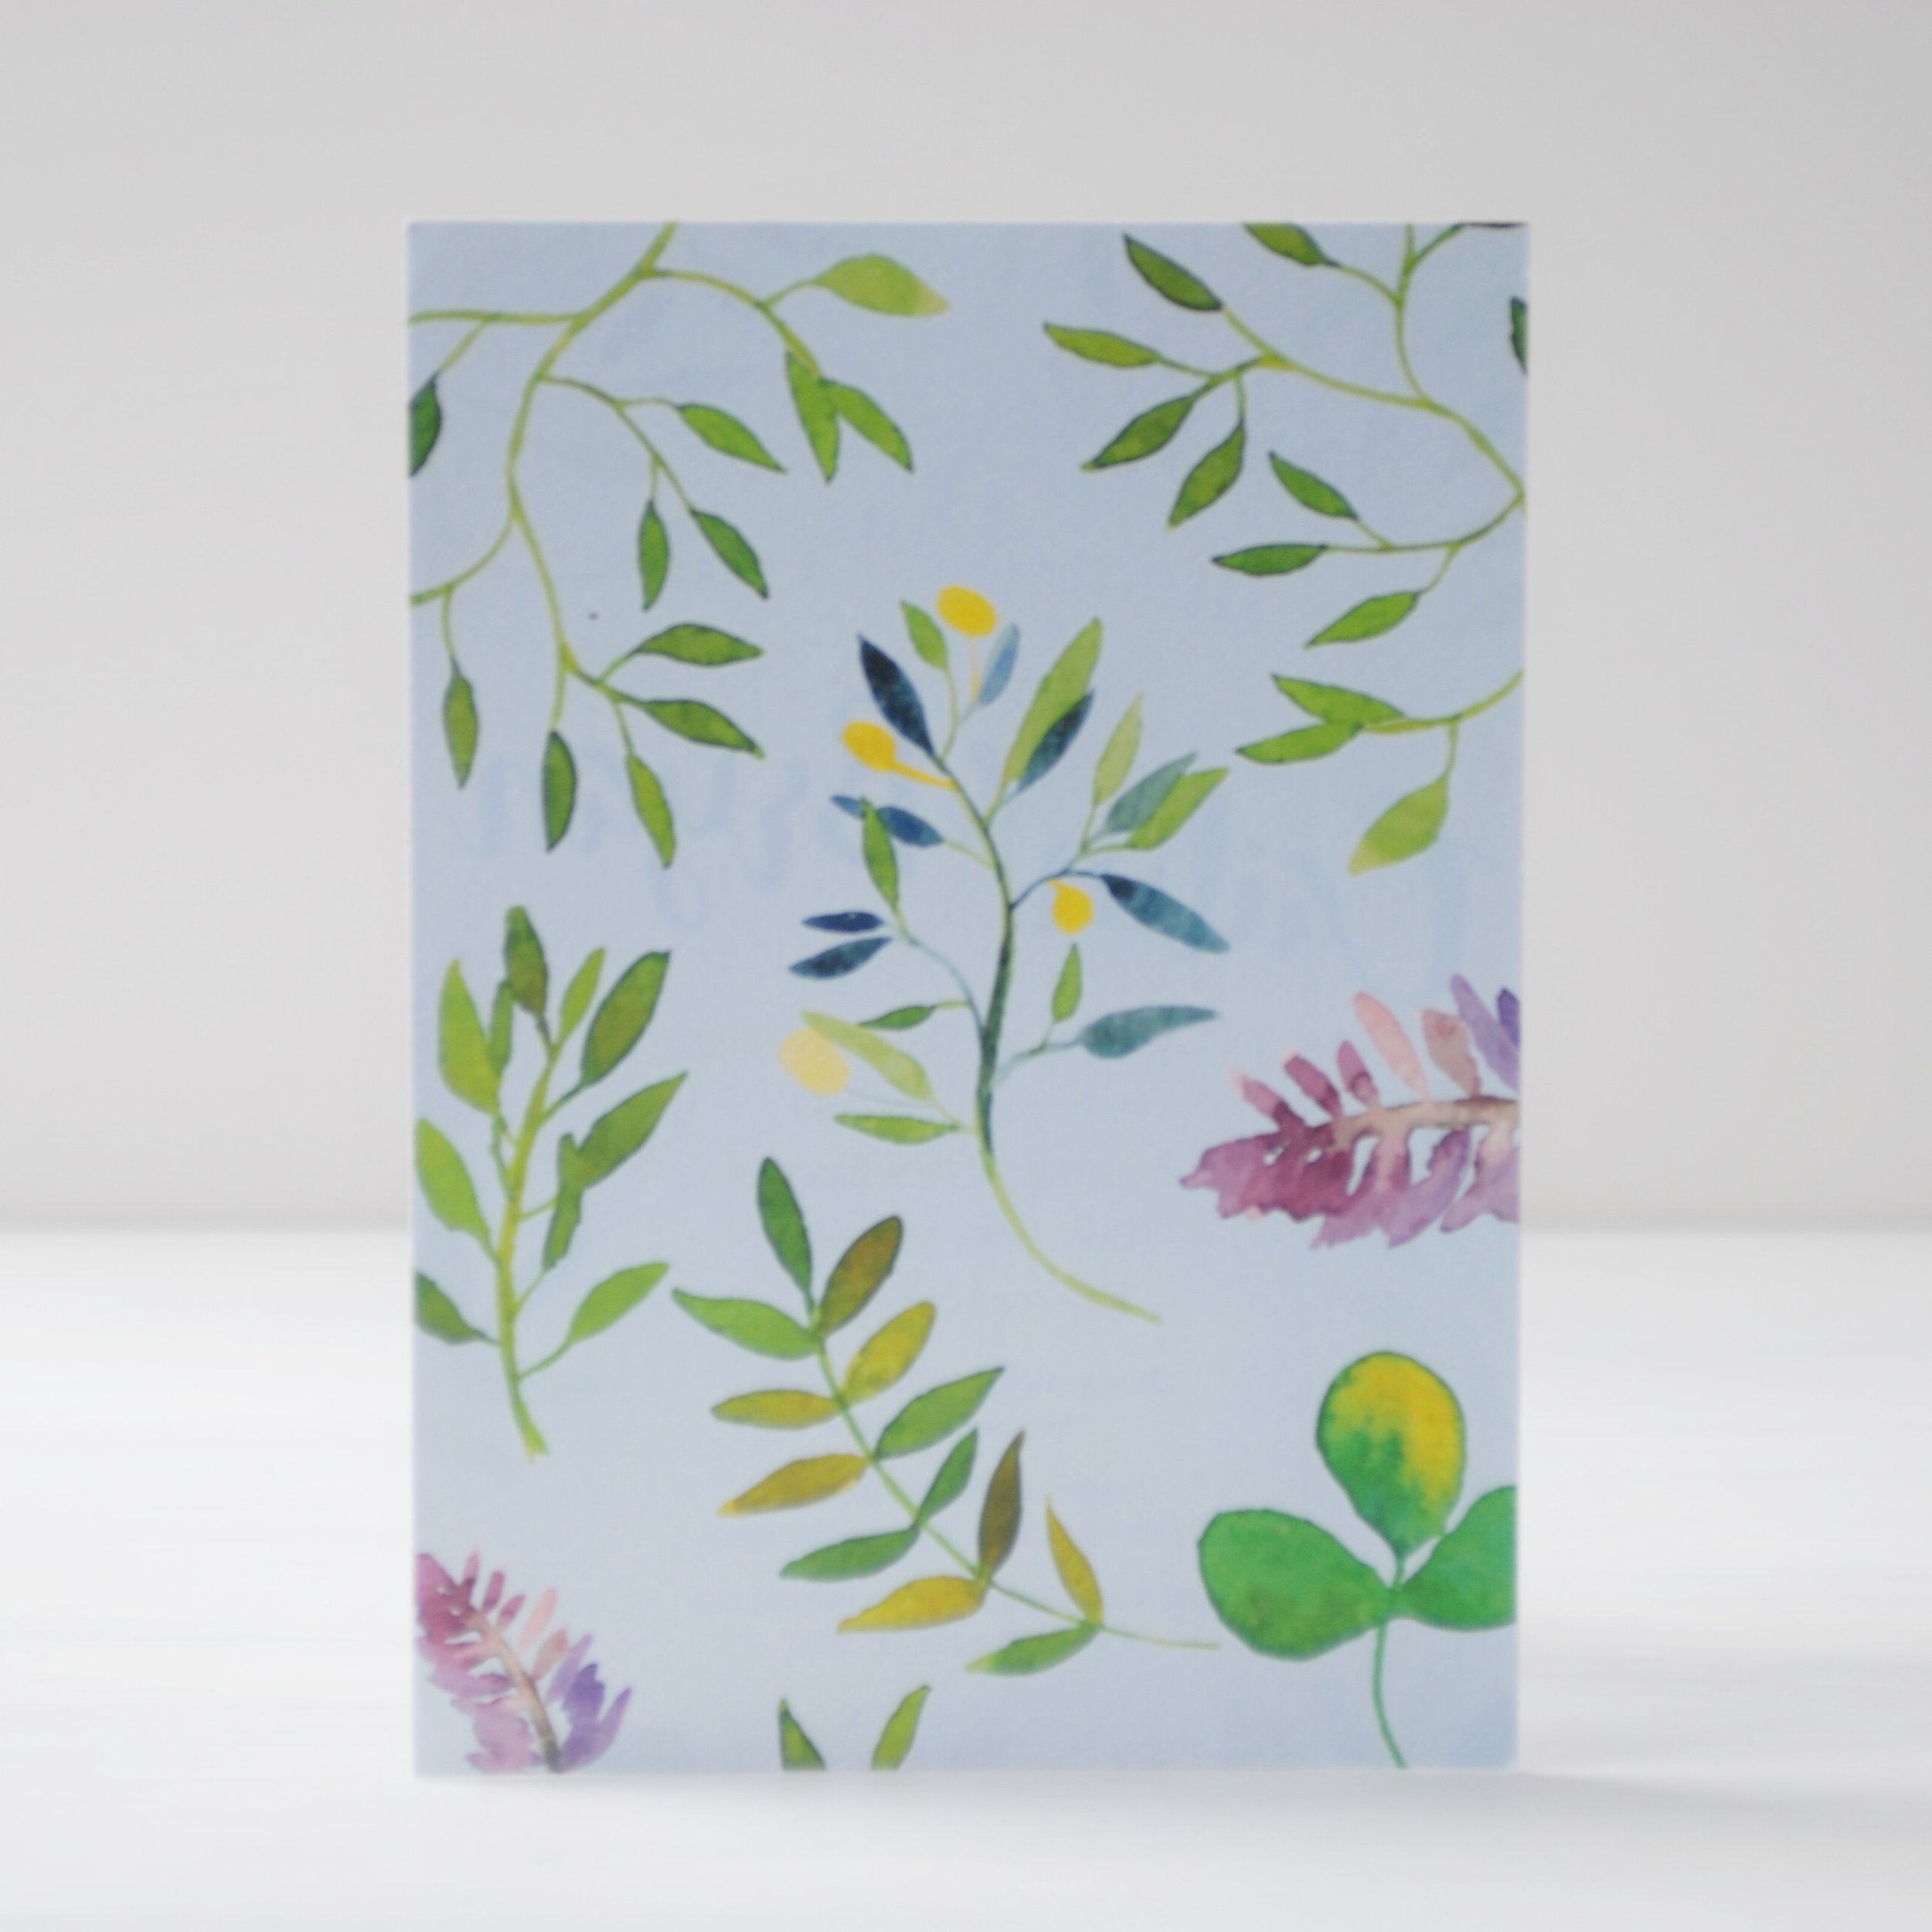 Flowers and leaves make a pretty pattern on the back of the invitation.